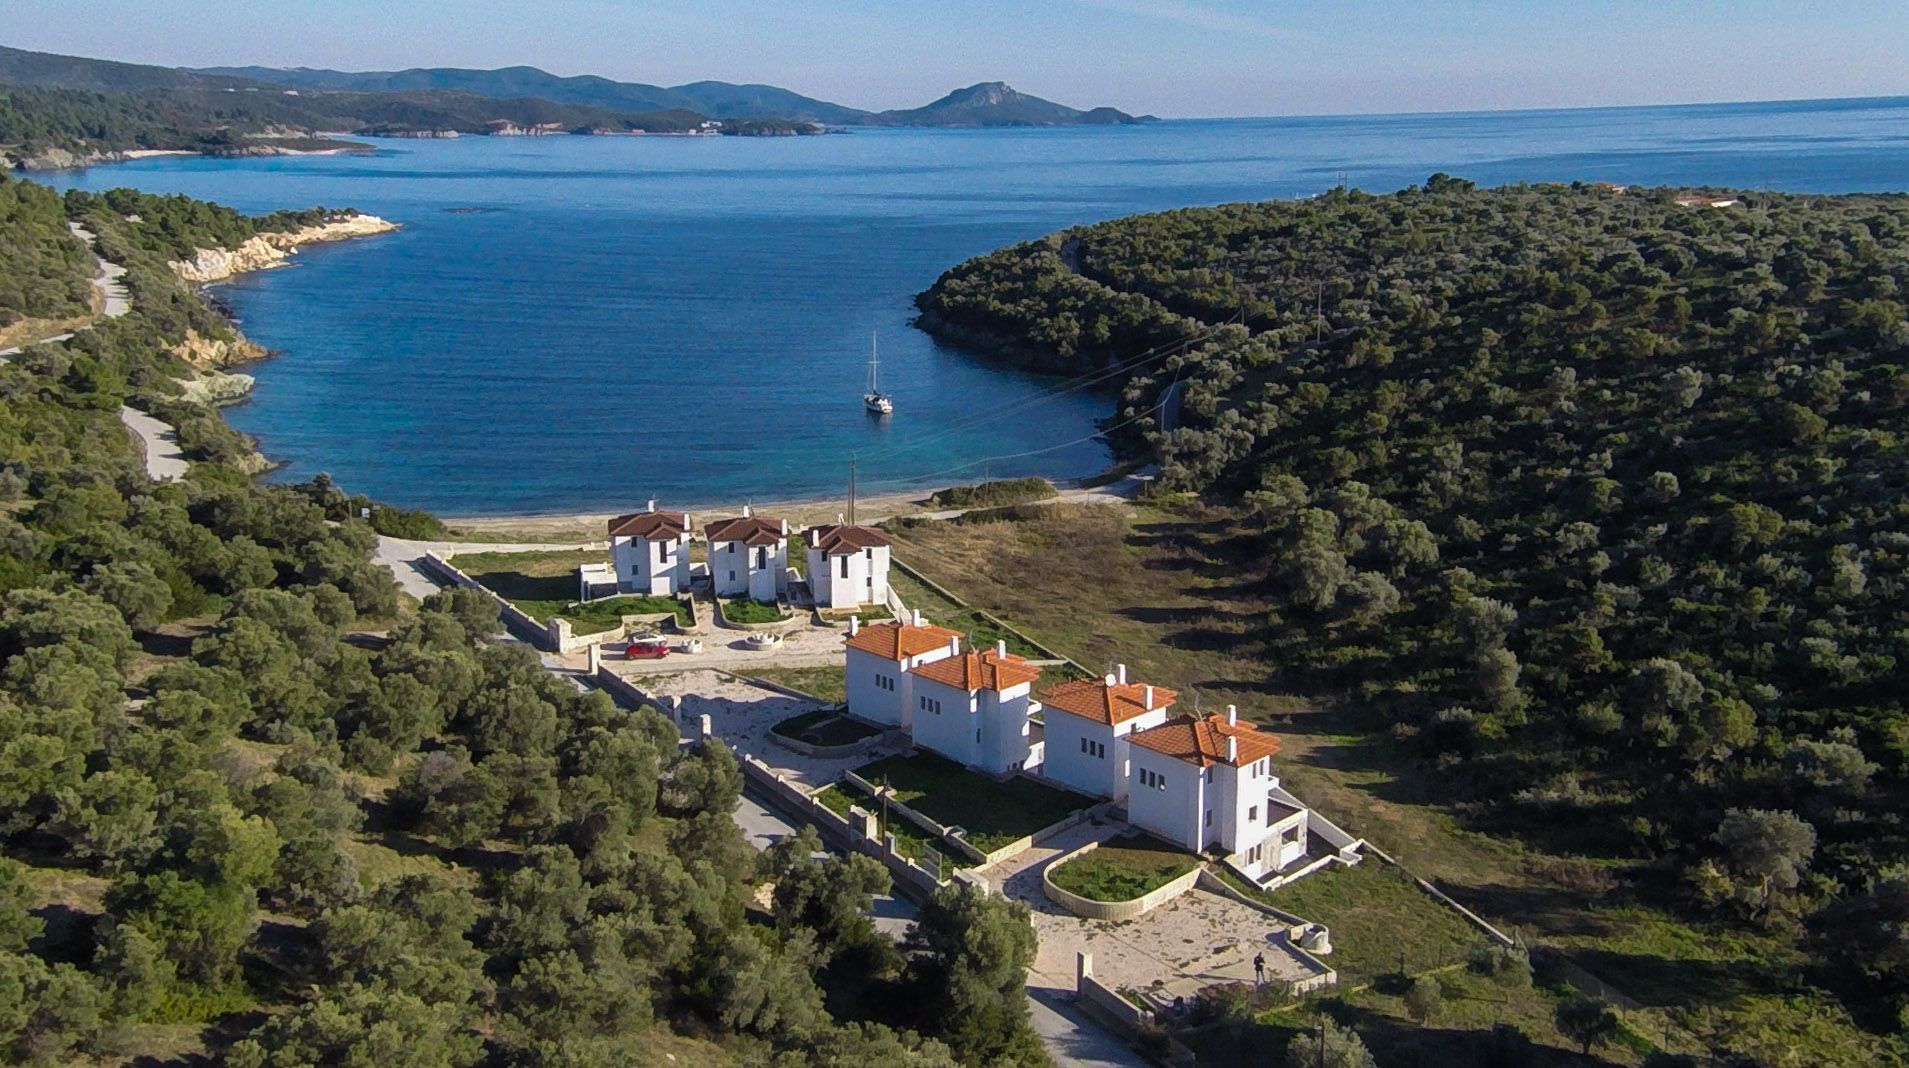 Vafi, Halkidiki-Sithonia, Greece - a new complex of villas in the protected cove in a private beach